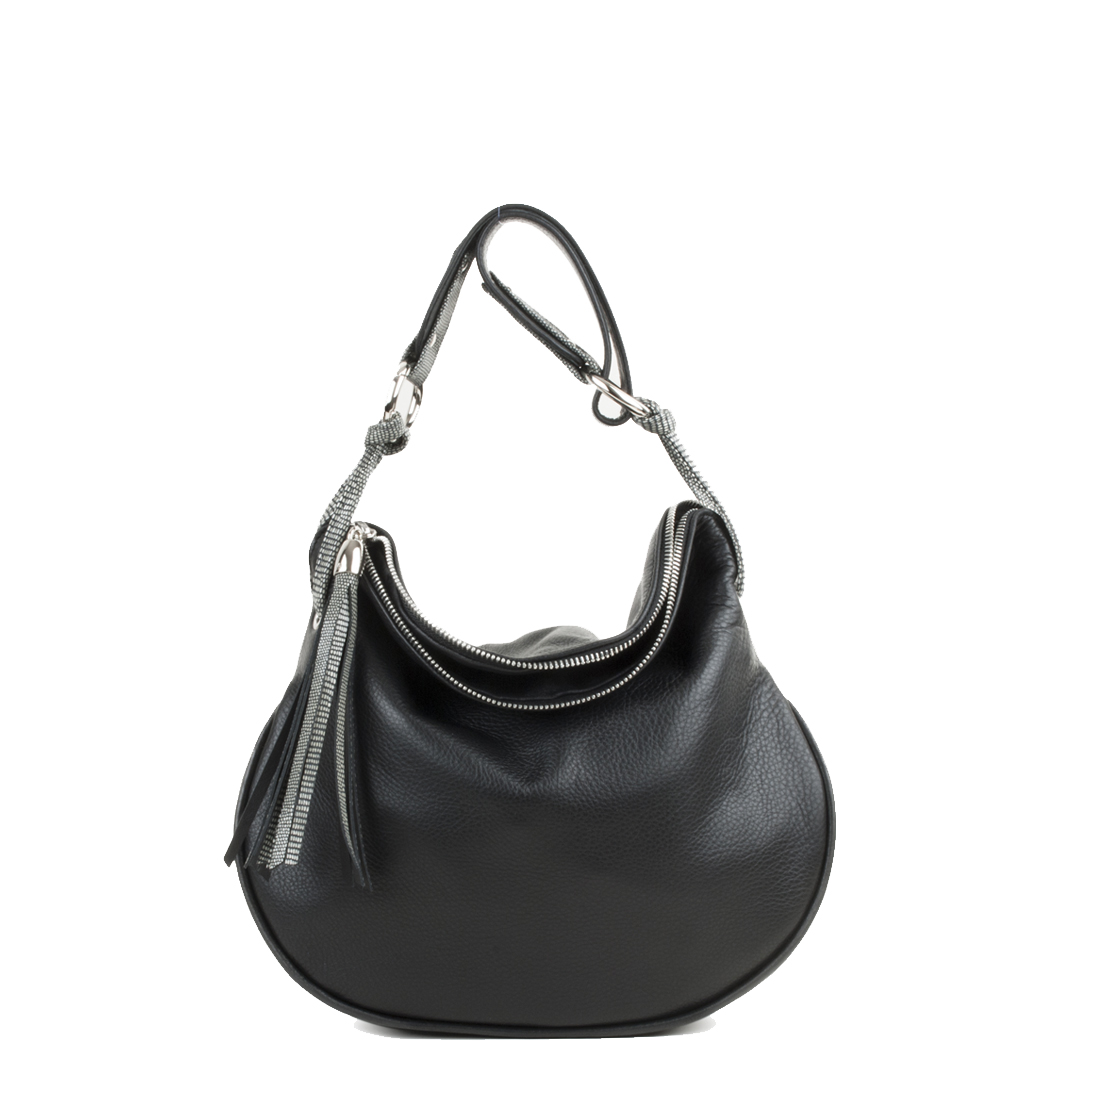 Milly Black Leather Shoulder Bag